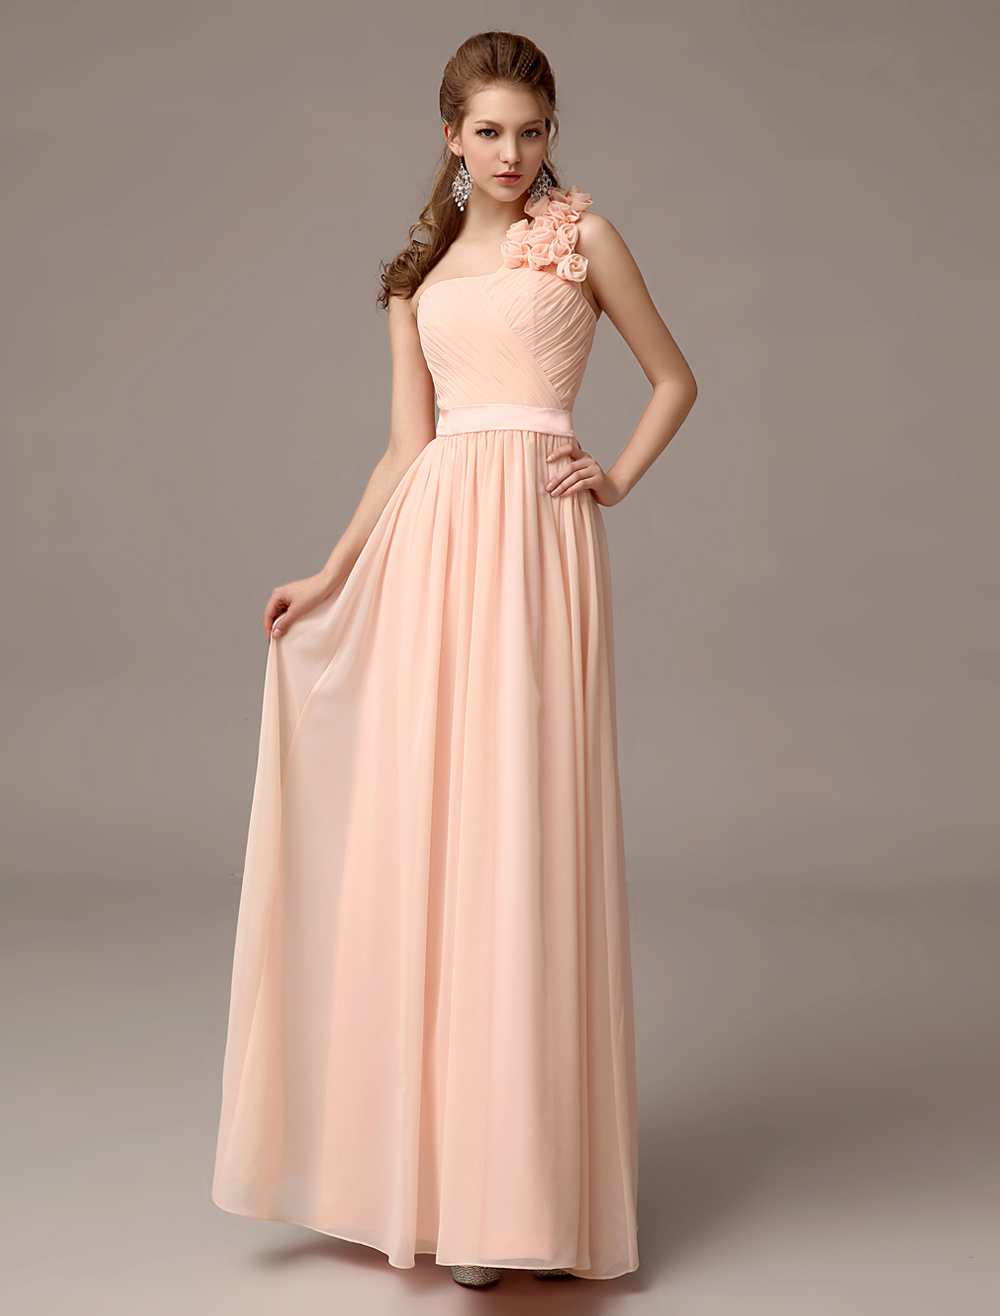 Gorgeous Floor-Length Nude Flower Chiffon Bridesmaid Dress with One-Shoulder A-line